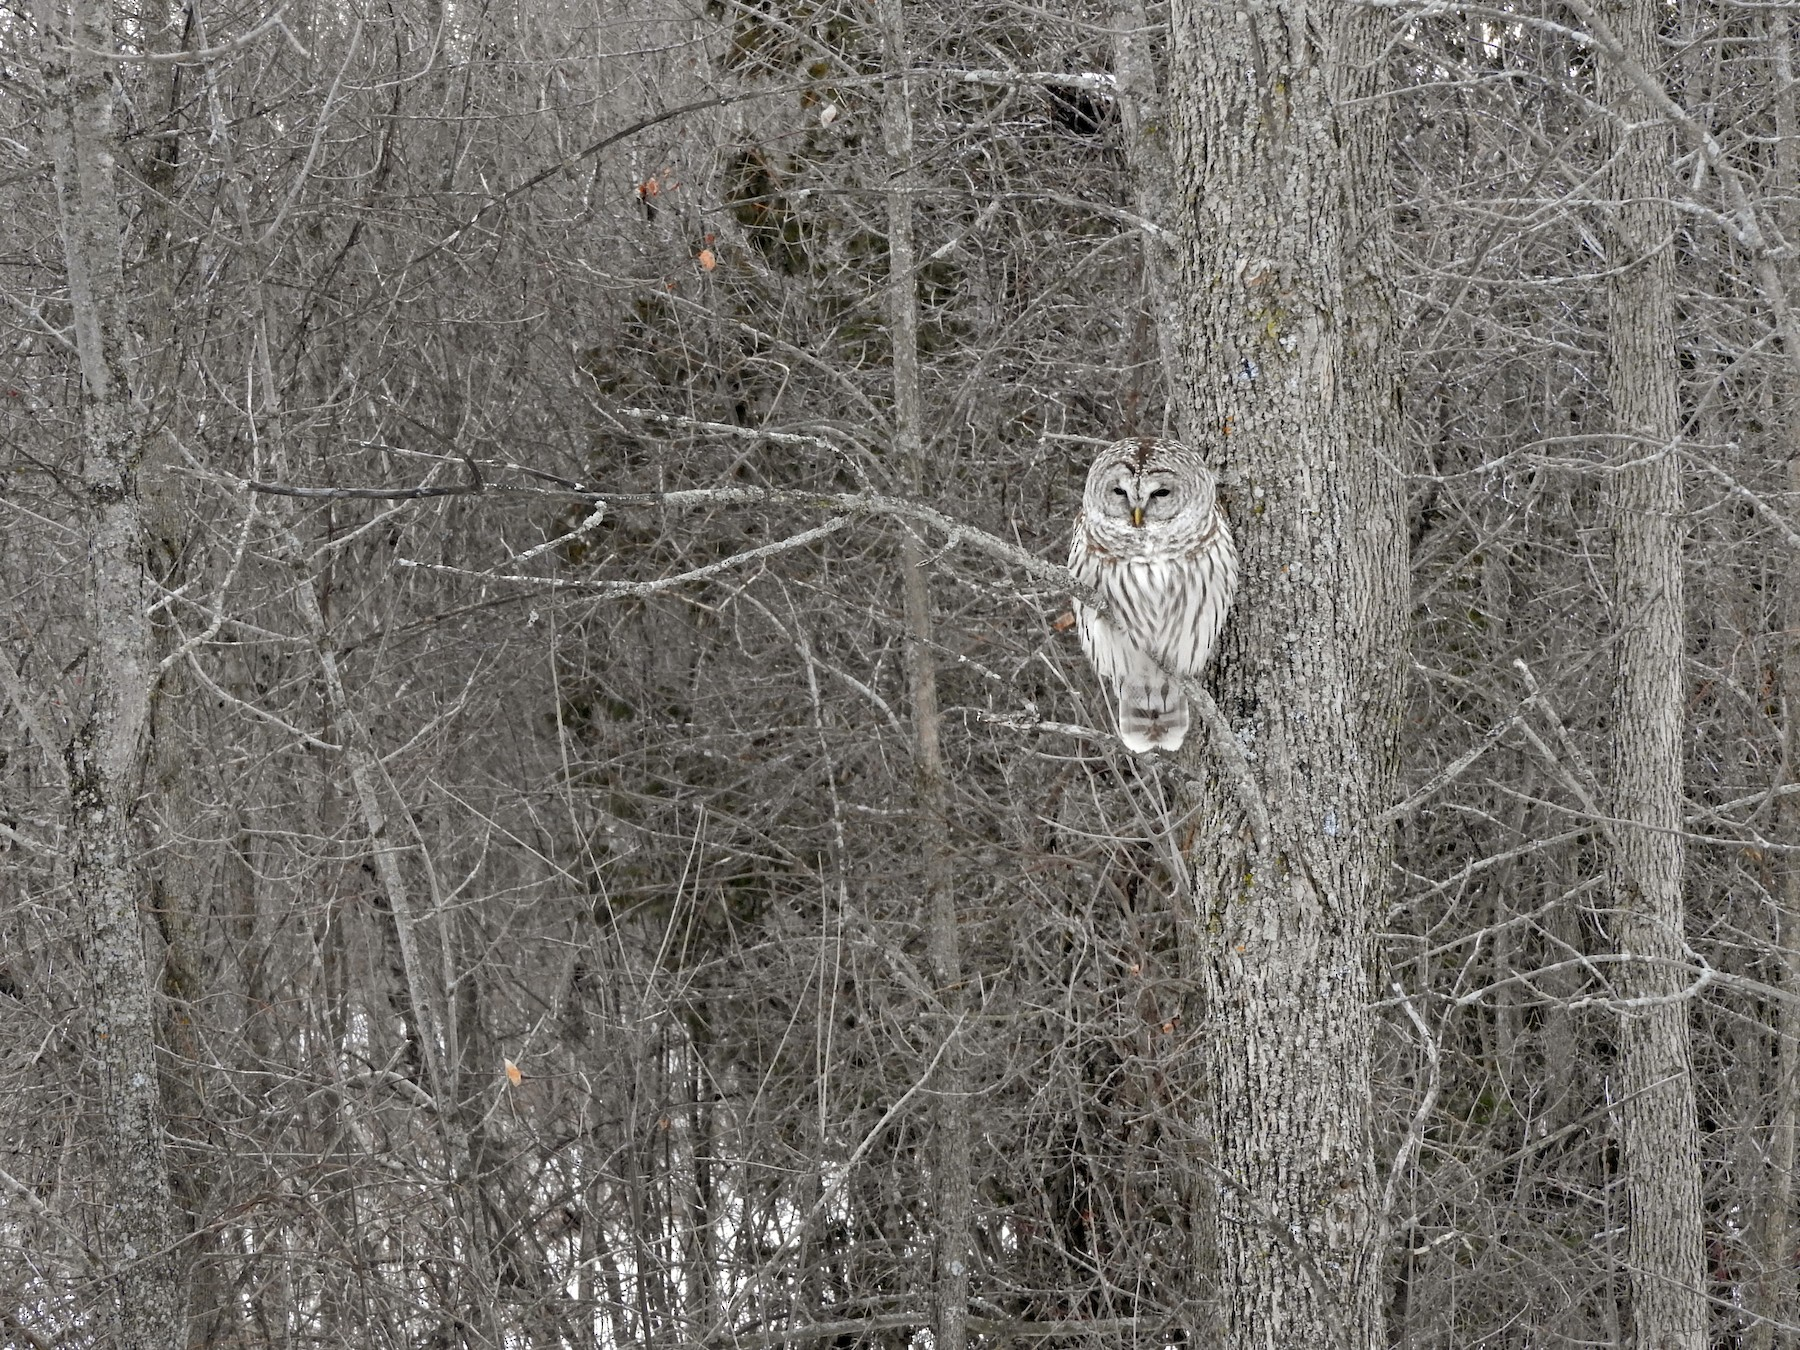 Barred Owl - Scott Gibson